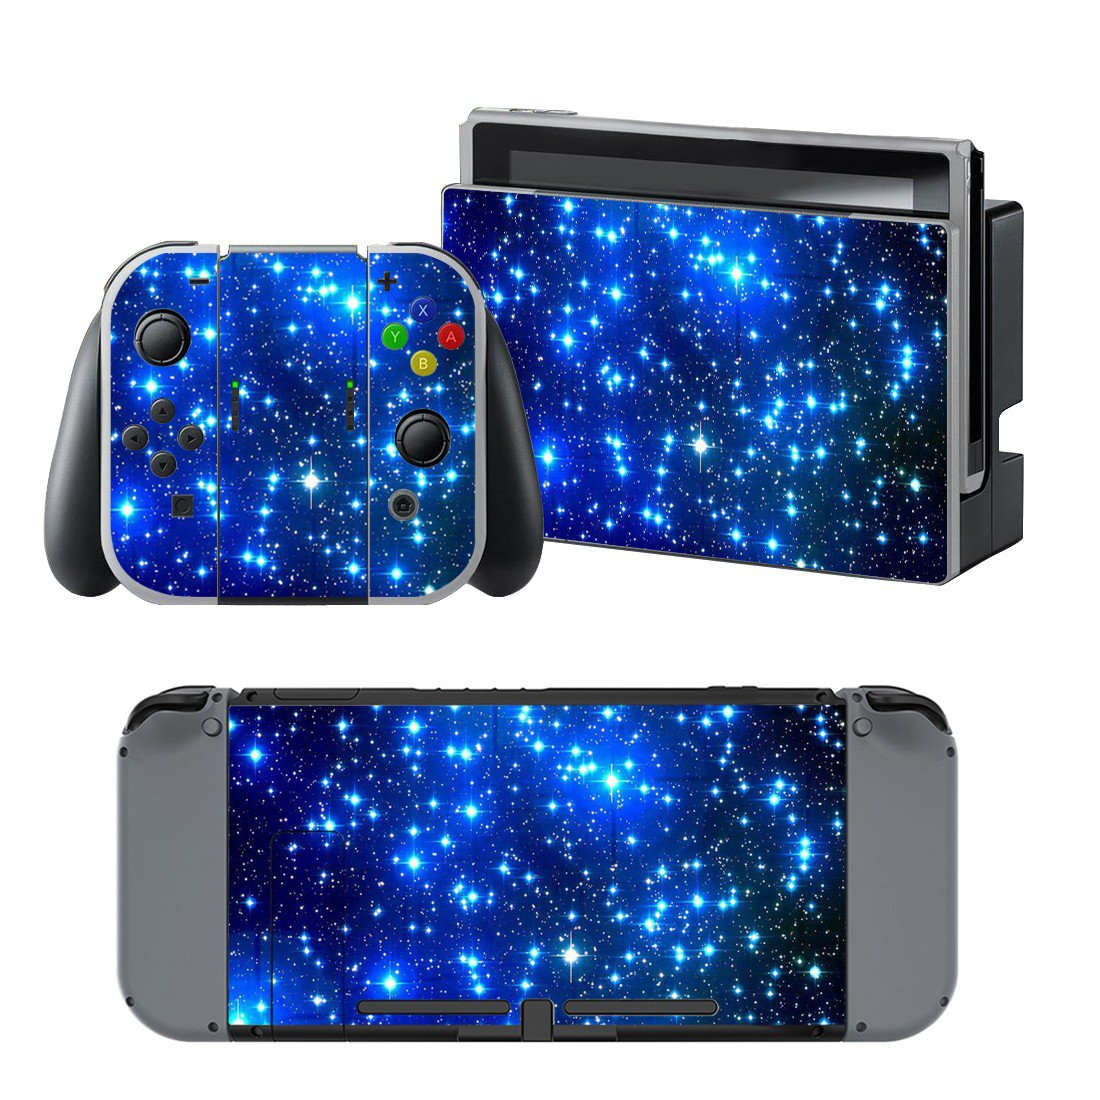 Starry sky design decal for Nintendo switch console sticker skin